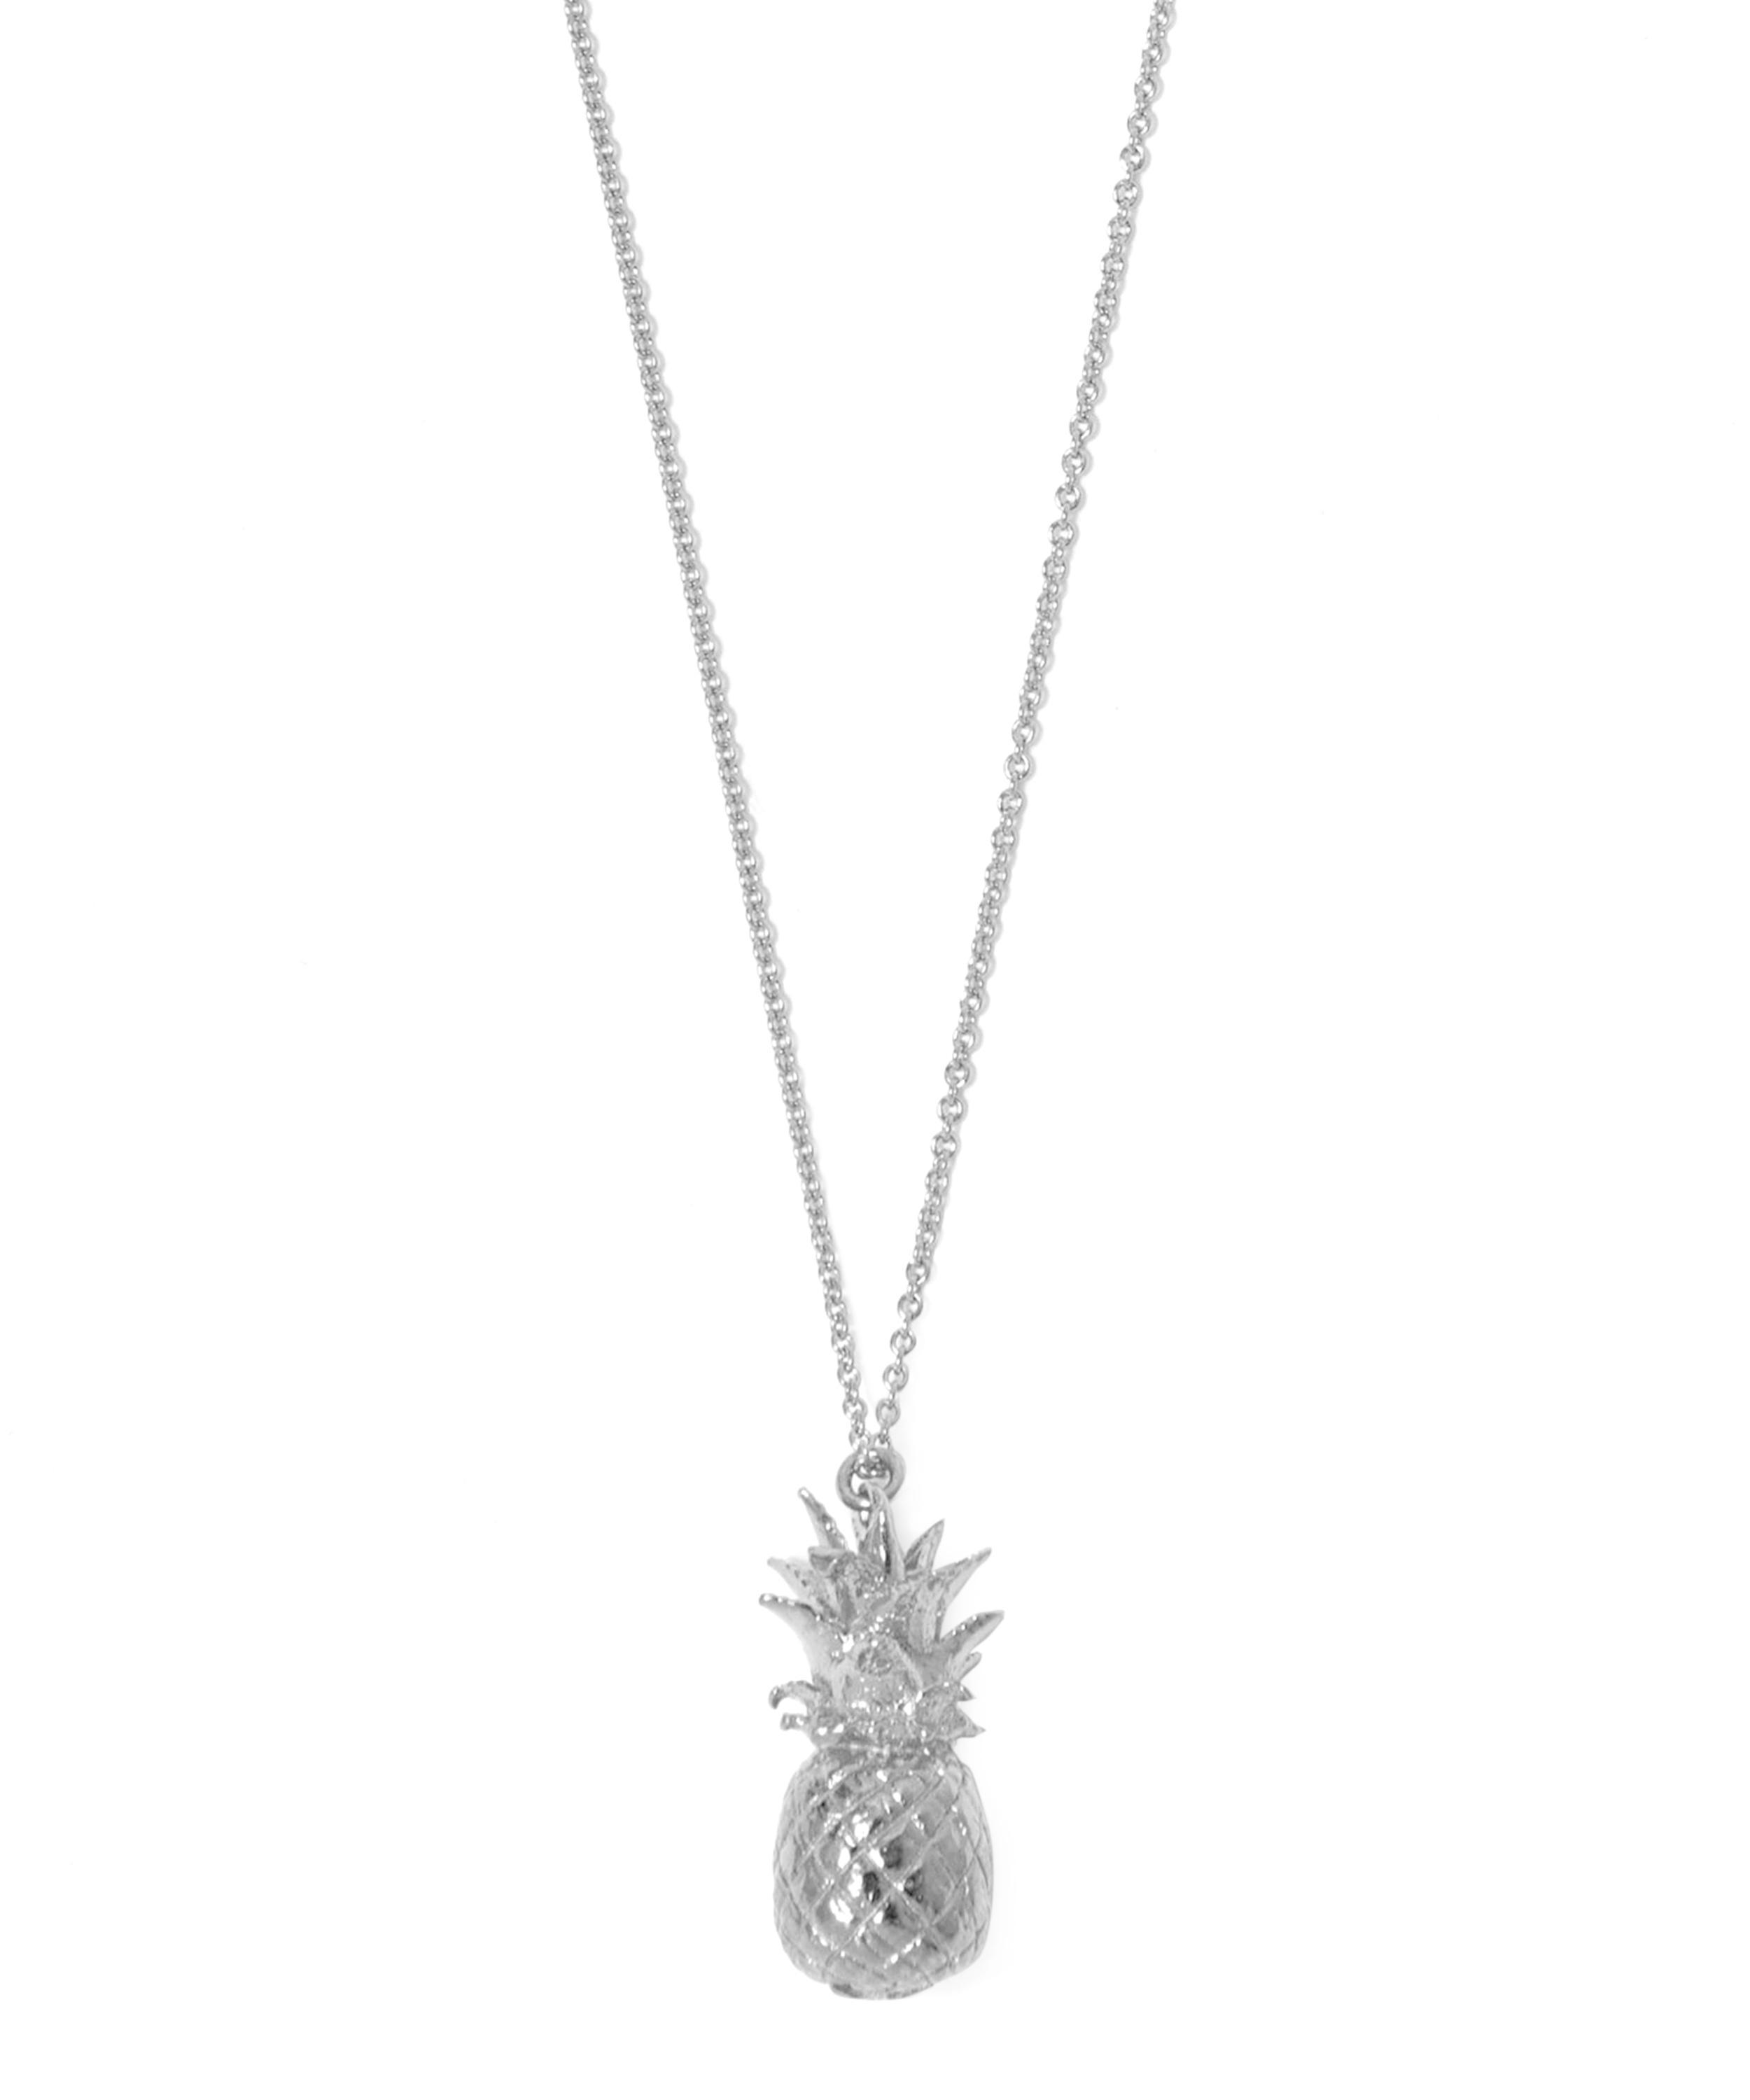 shop necklace on pineapple mg crowdyhouse